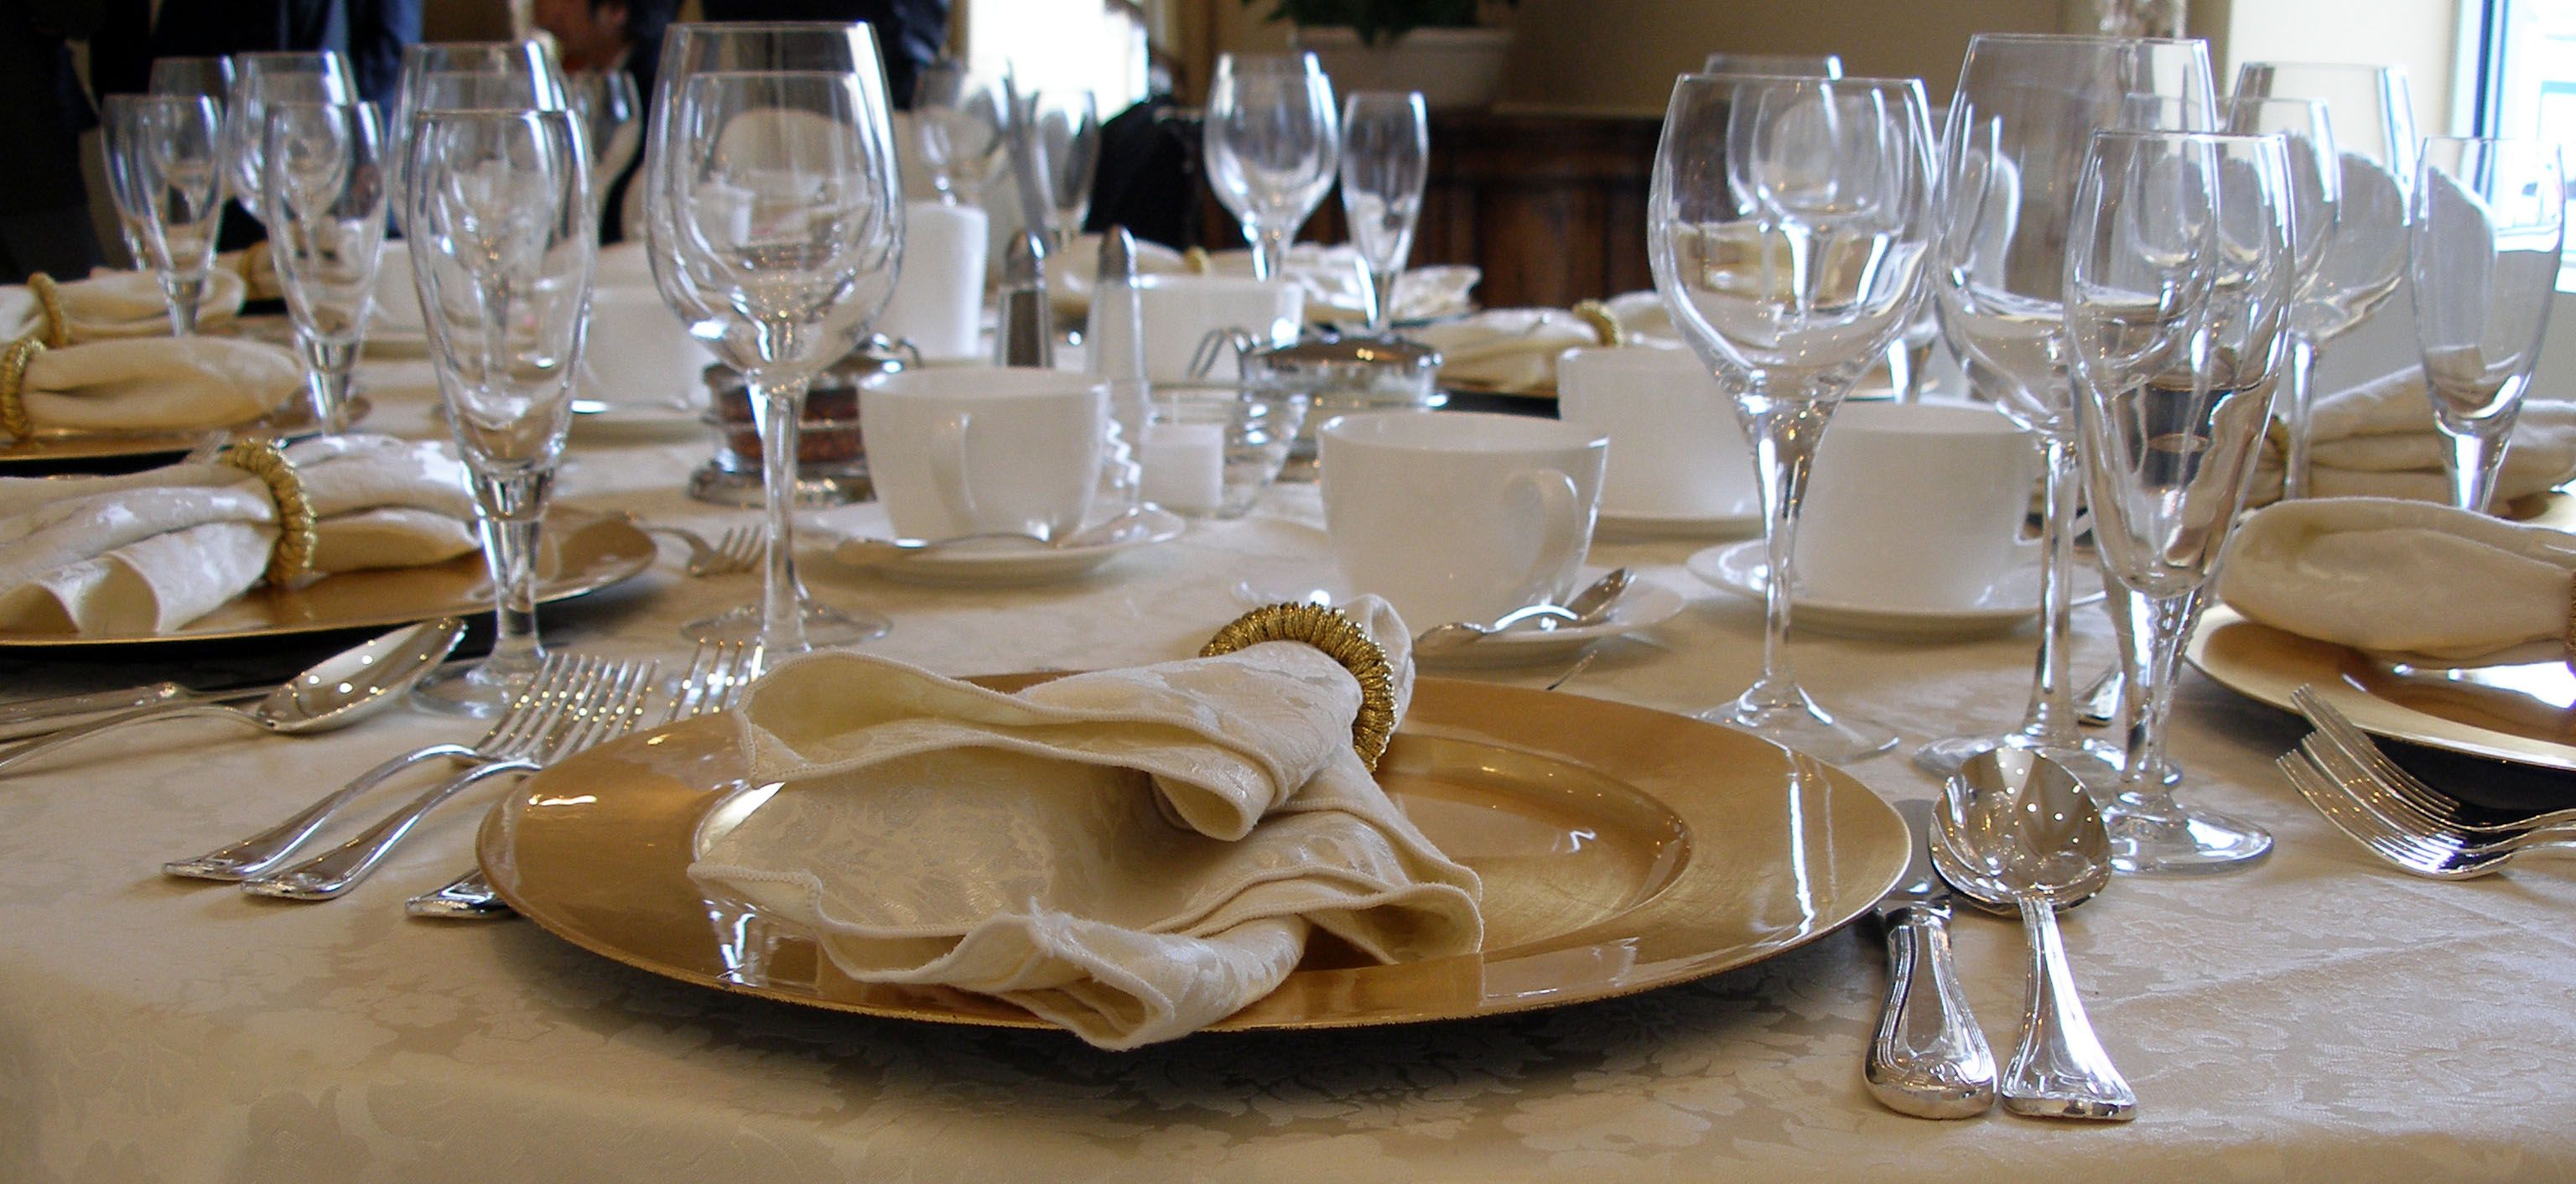 table setting for fine dining google search table